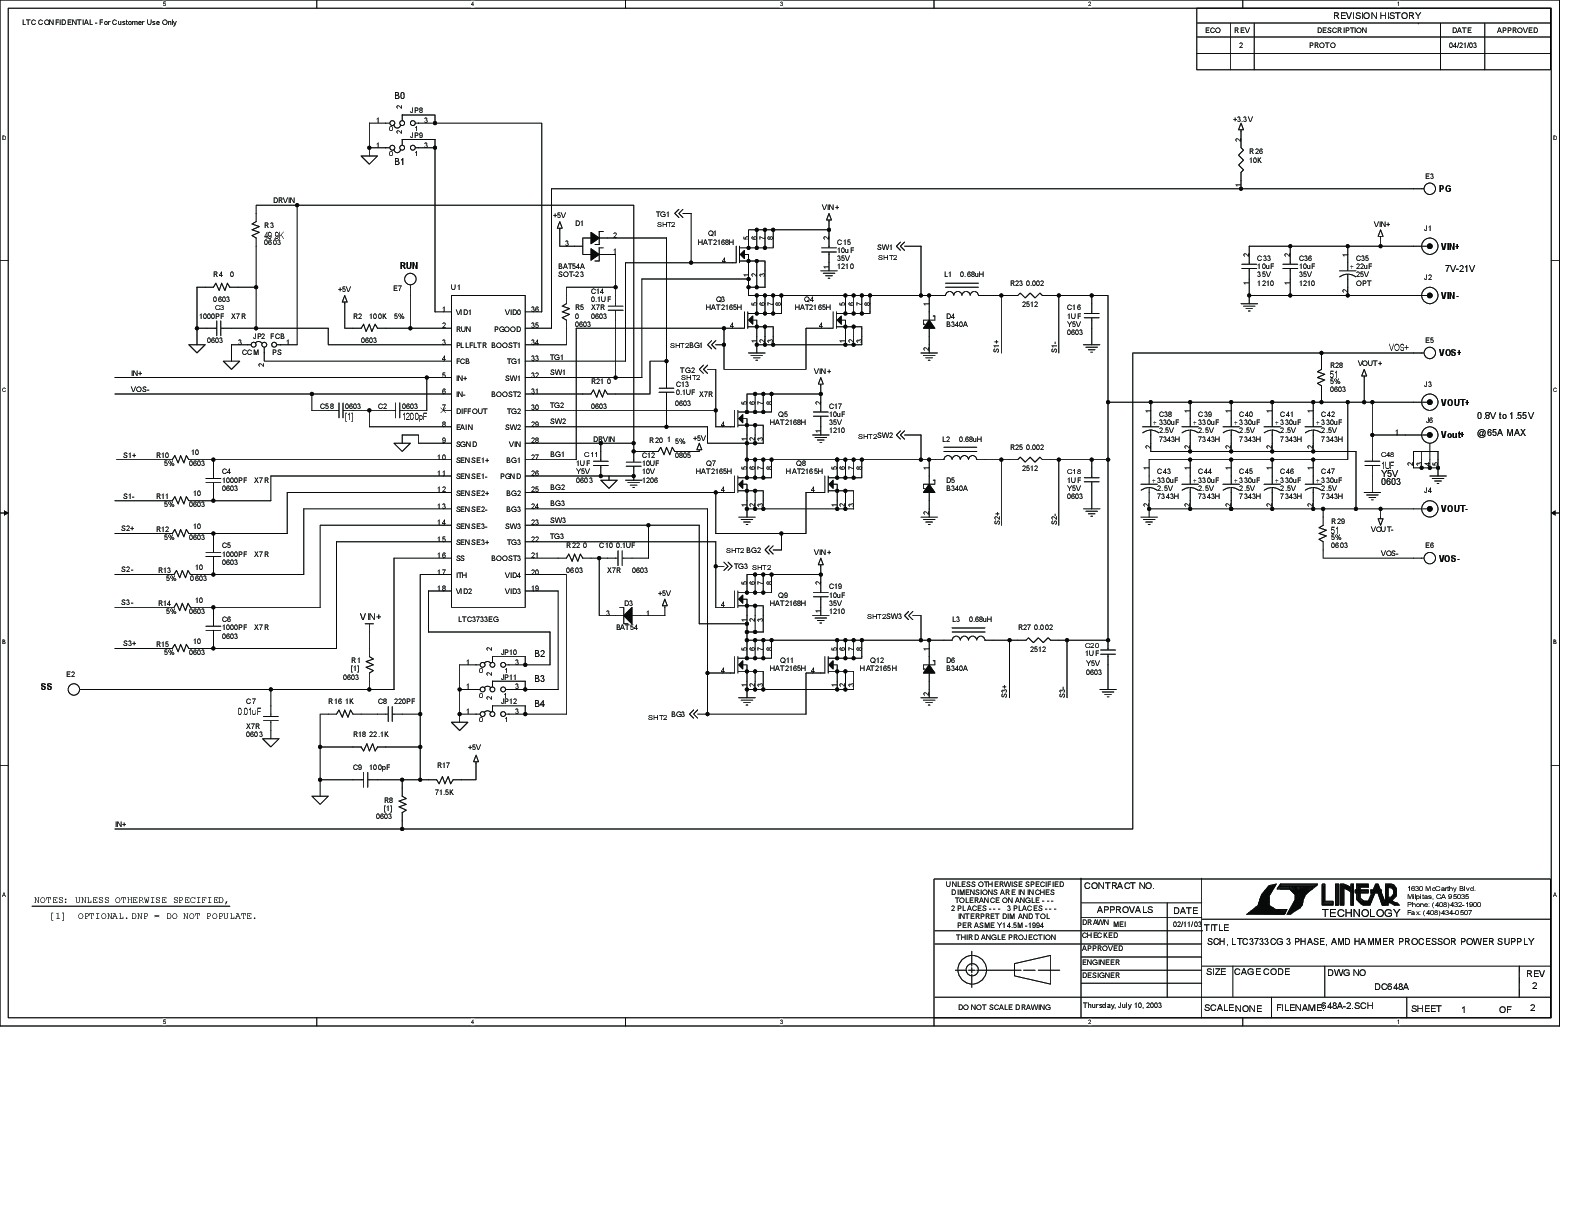 3 Phase Electrical Wiring Diagram Generator Single Black Max Solutions Dc648a Ltc3733cg Demo Board Amd Hammer Schematic Of